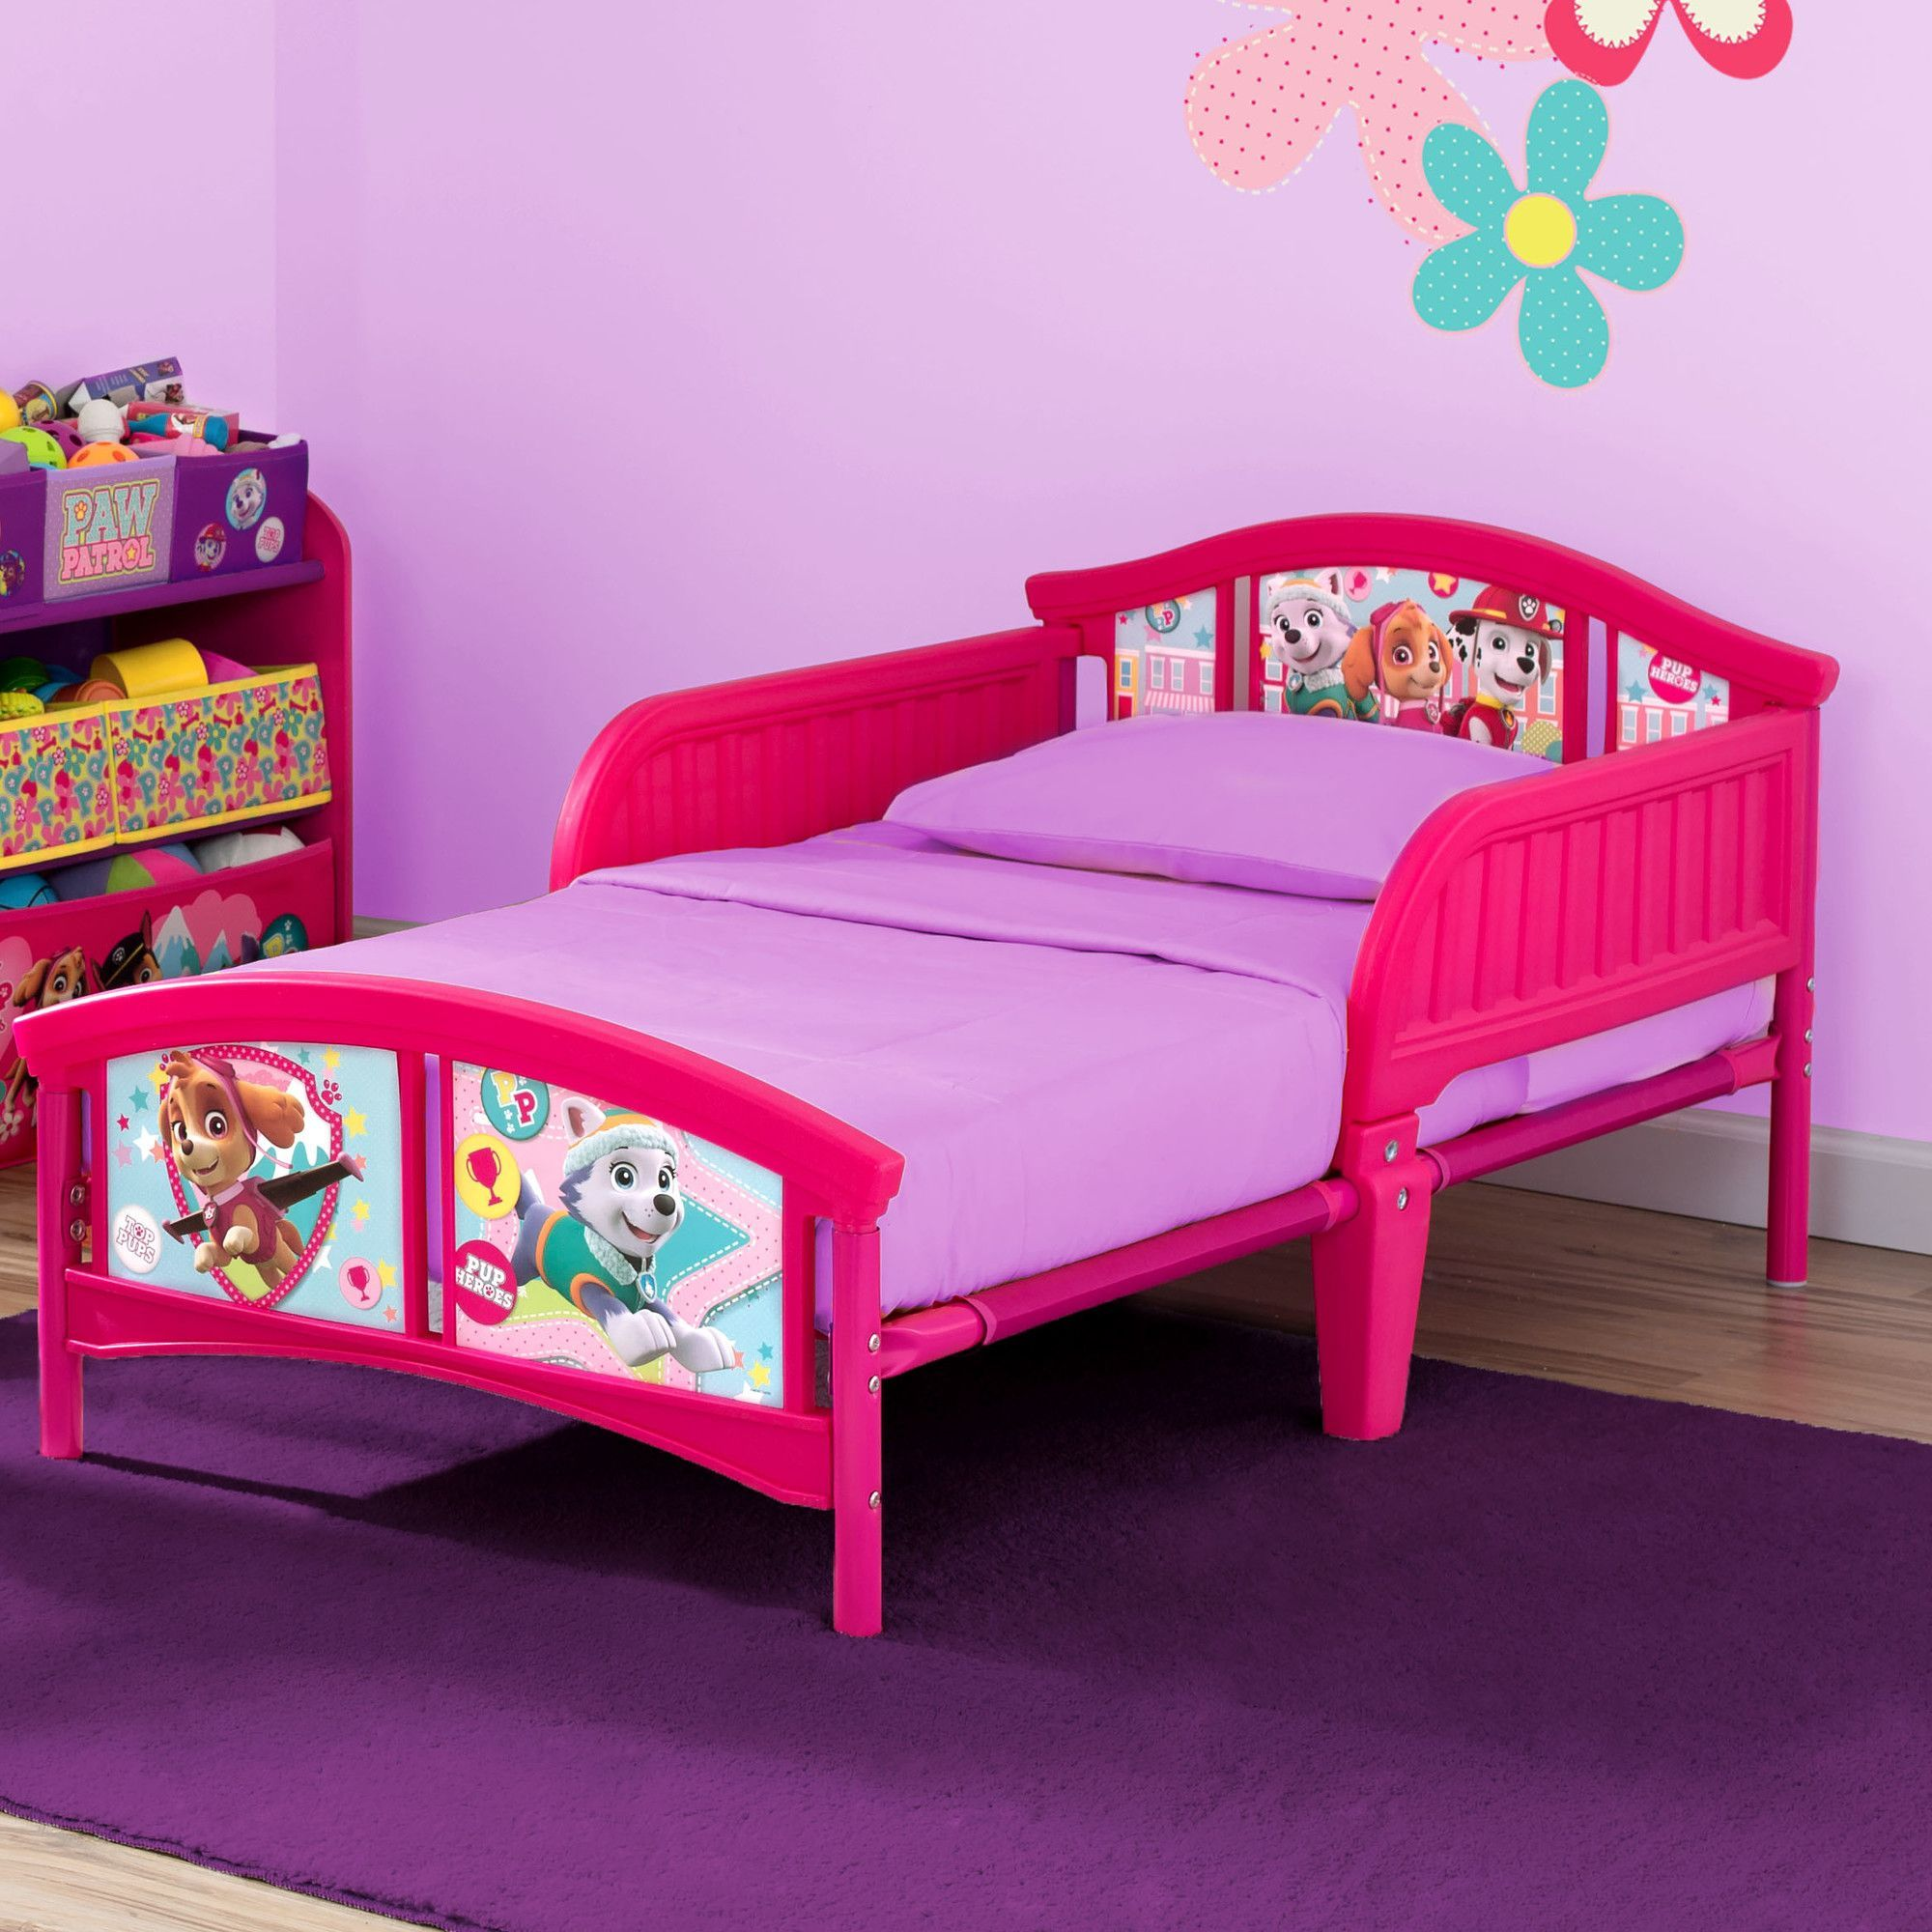 Nick Jr. PAW Patrol Skye and Everest Plastic Toddler Bed ...